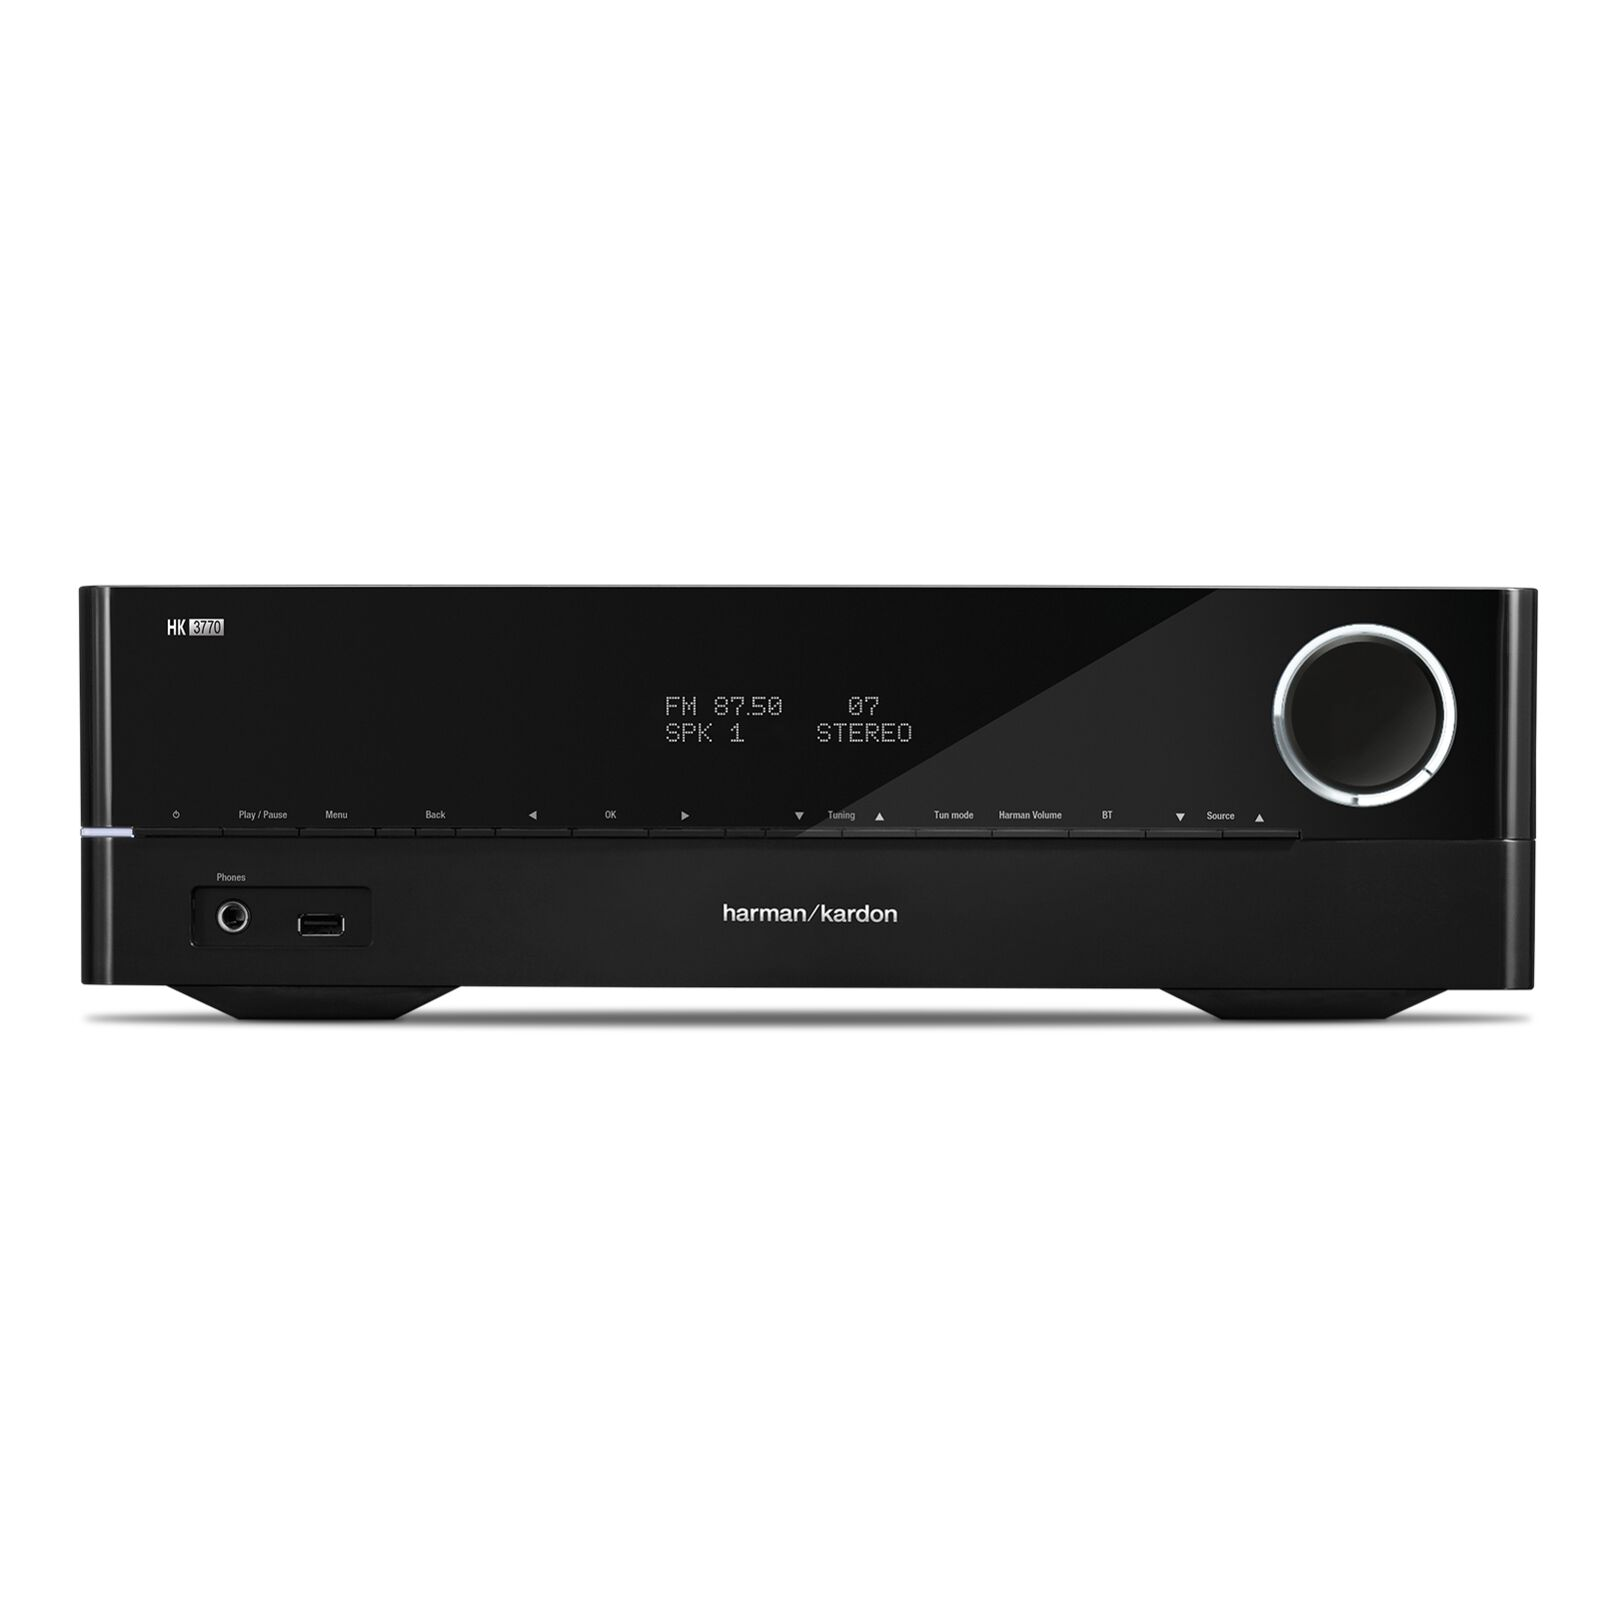 HARMAN/KARDON Receiver HK 3770